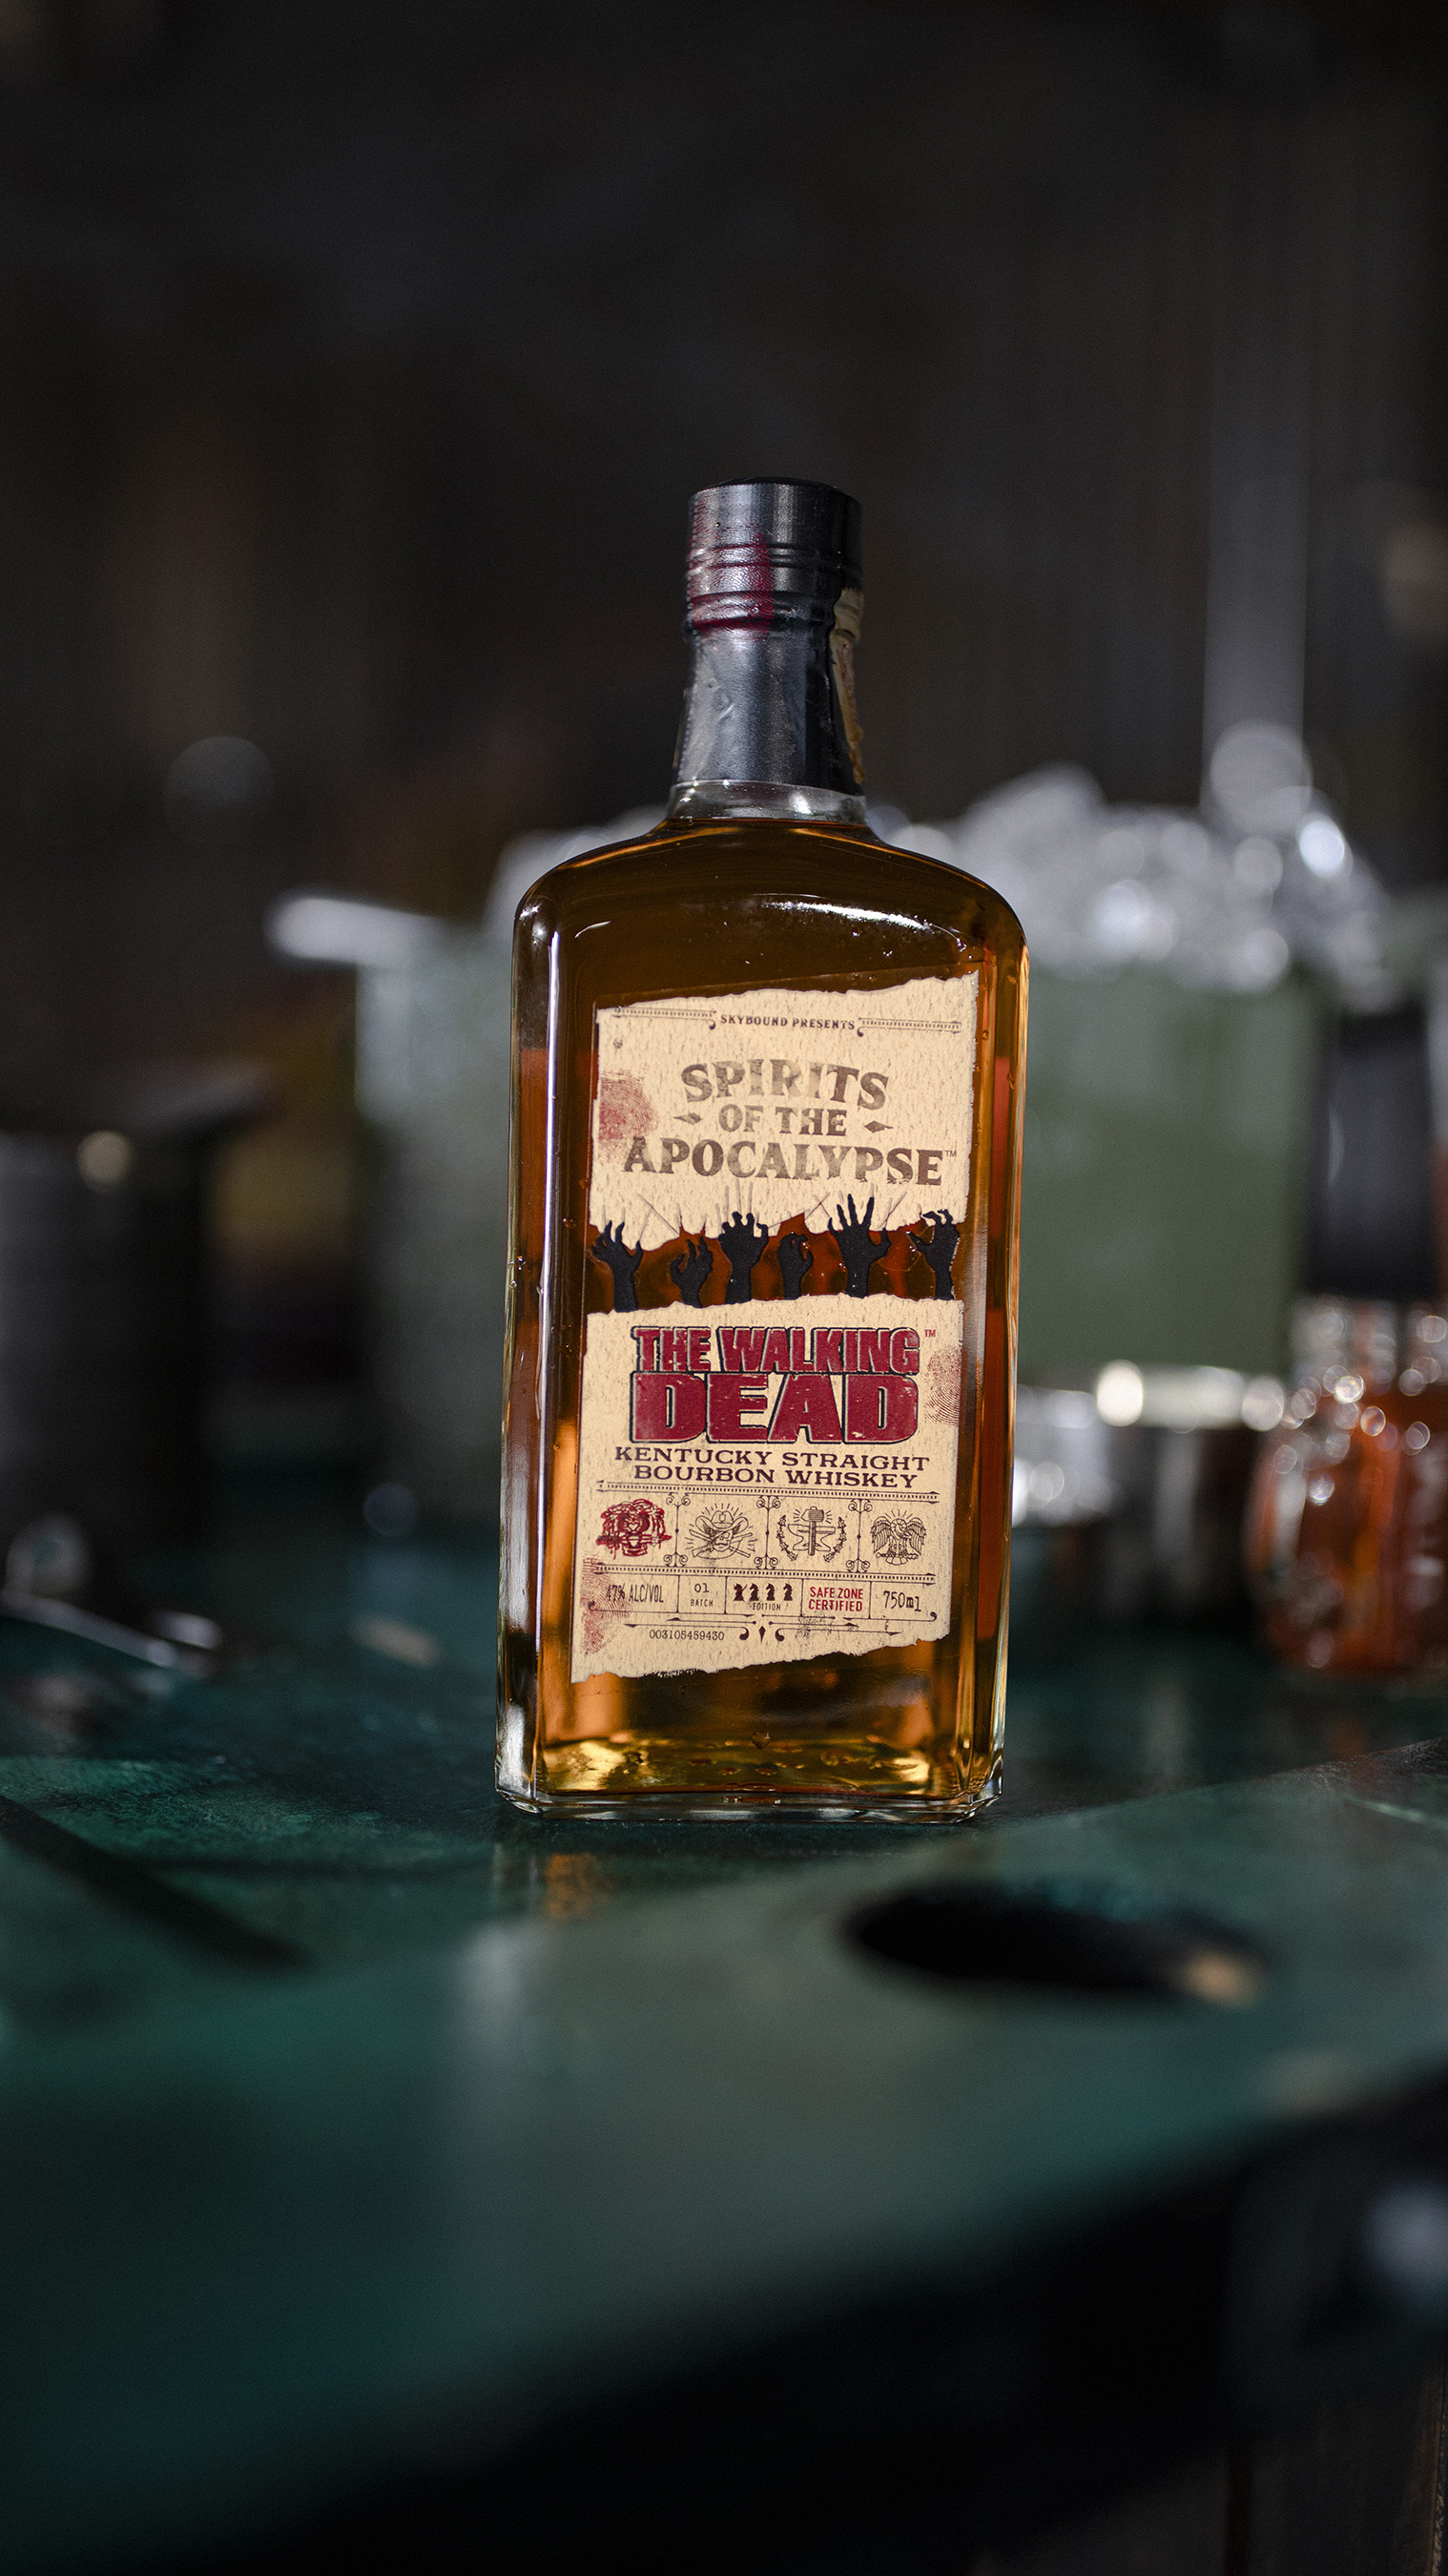 The Walking Dead Kentucky Straight Bourbon Whiskey is available beginning in October for a limited time only at select stores nationwide.